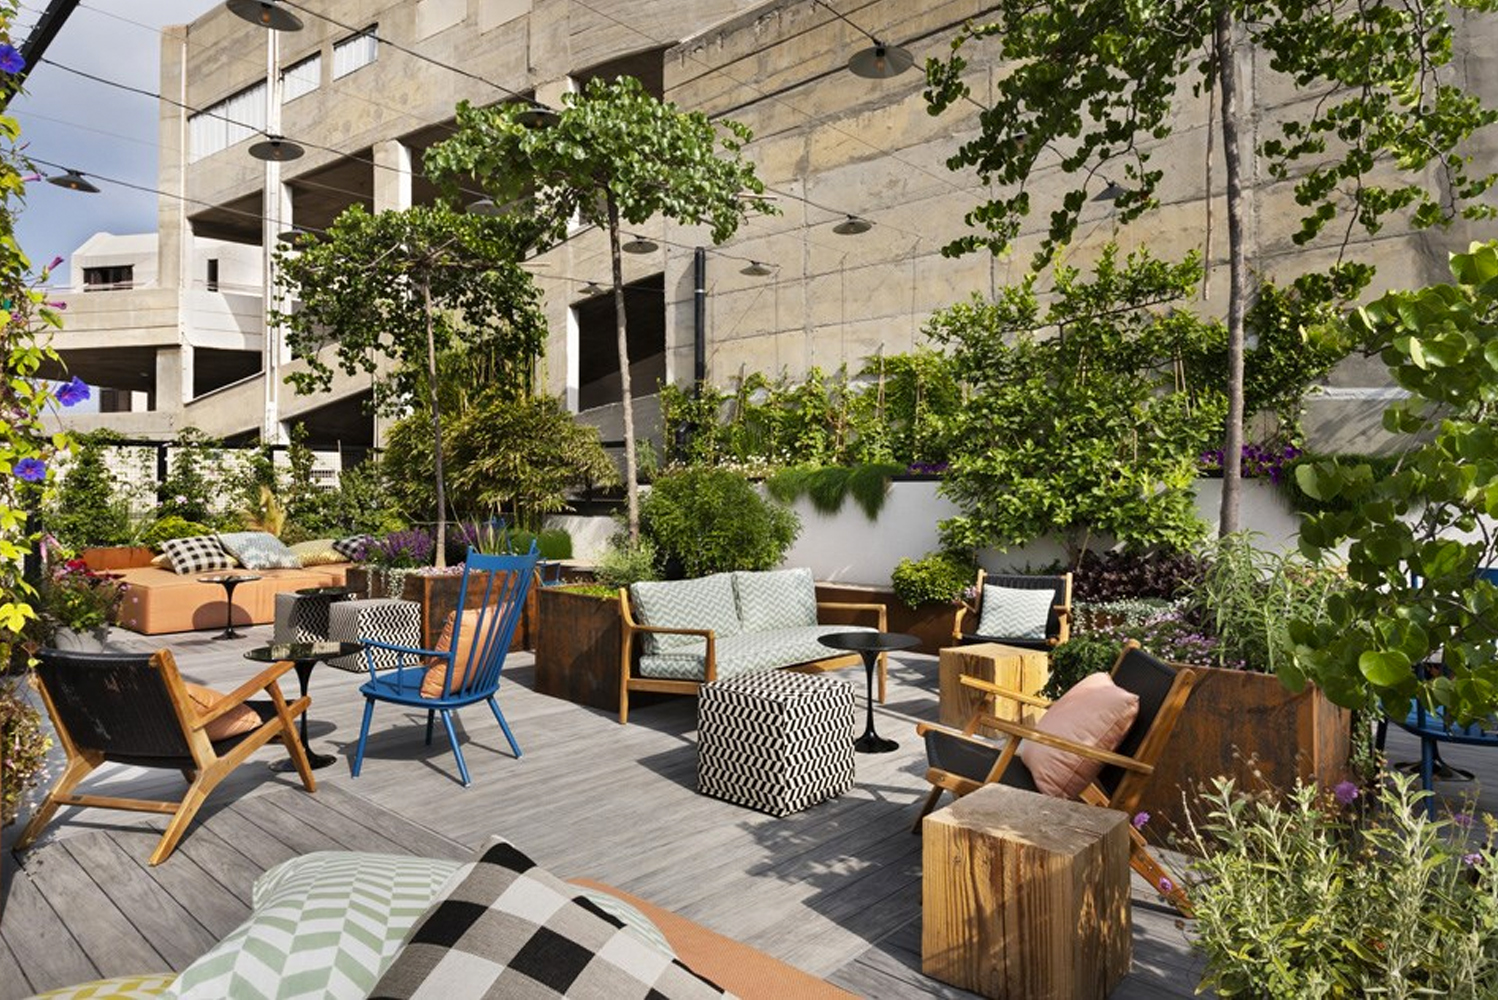 There is a hidden courtyard surrounded by greenery and concrete walls.